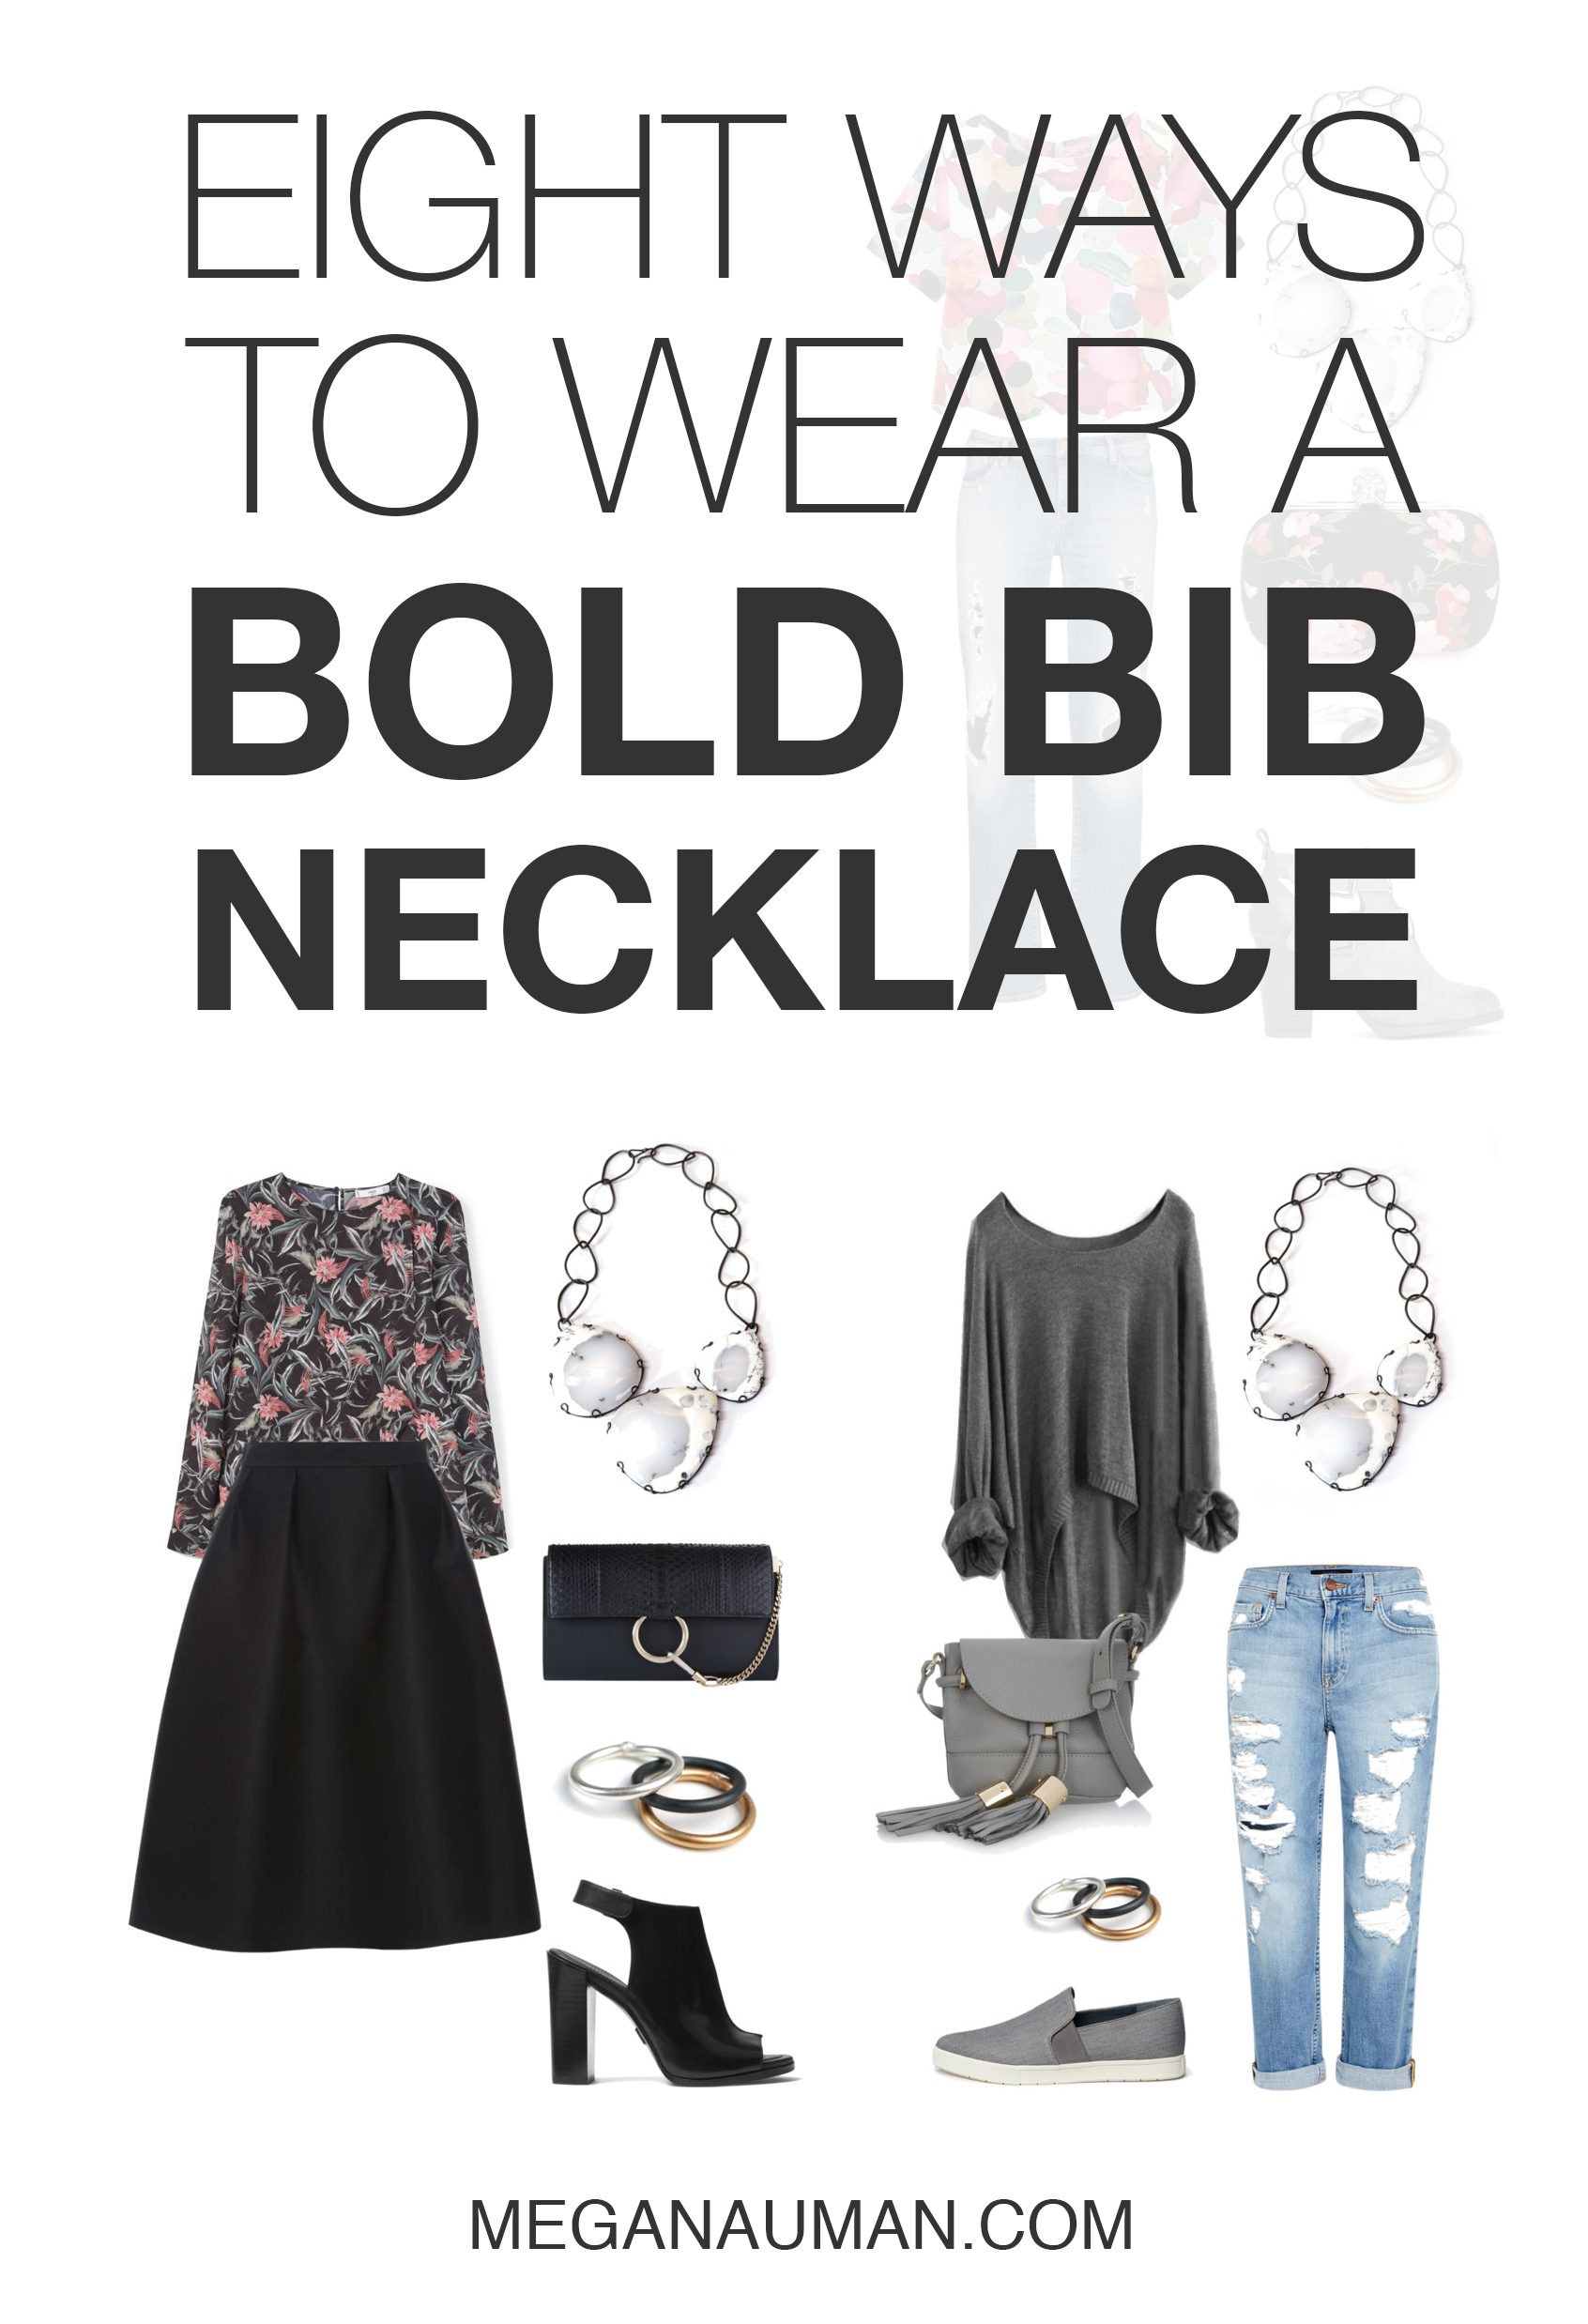 eight ways to style a bold bib statement necklace - from casual to professional to party // click through for outfit details